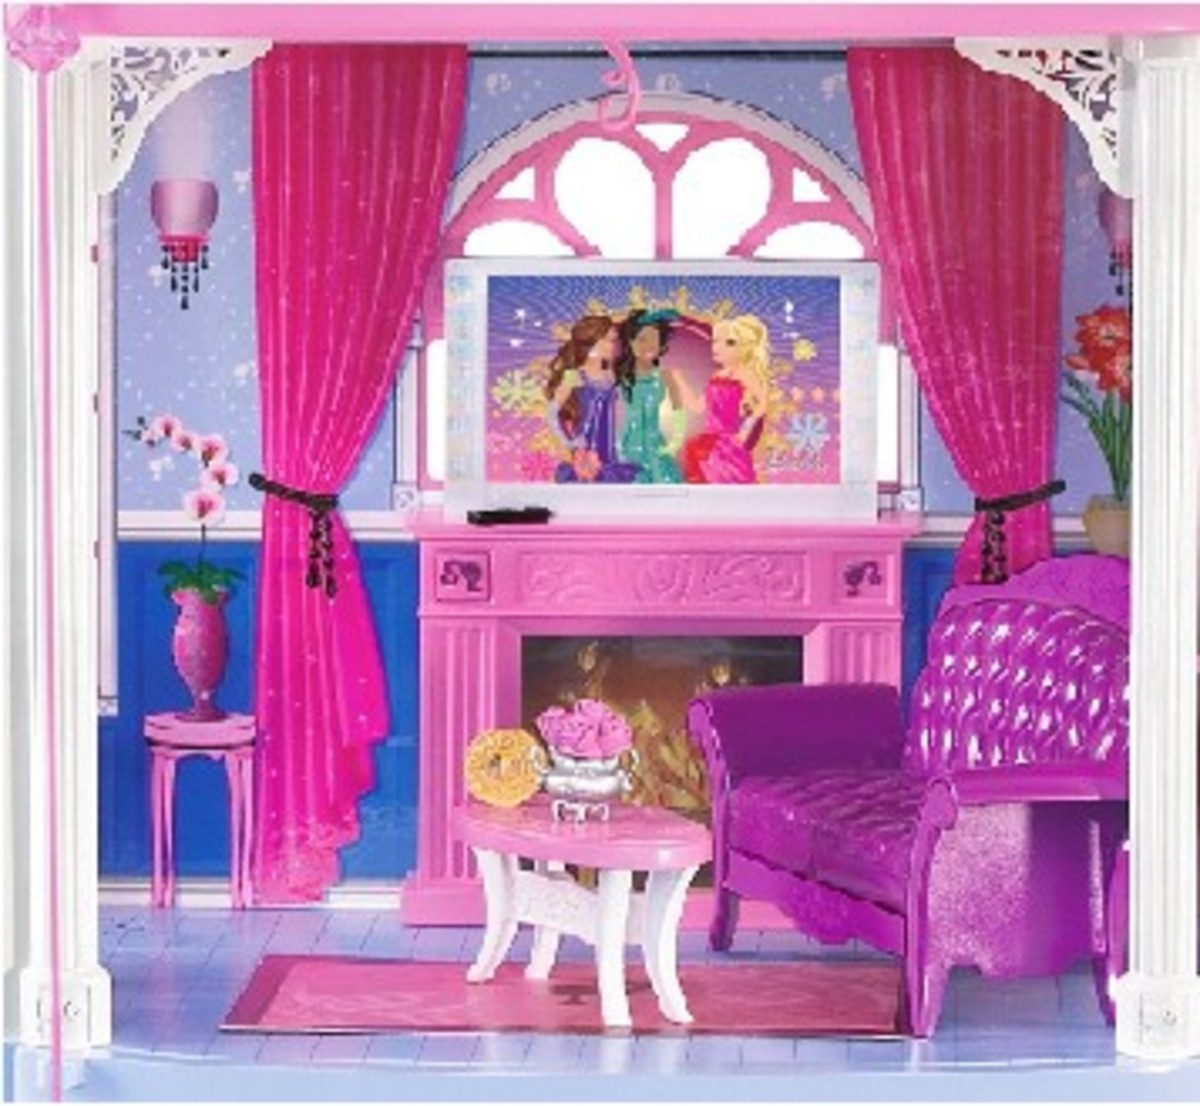 Barbie doll's lavish interior decor...